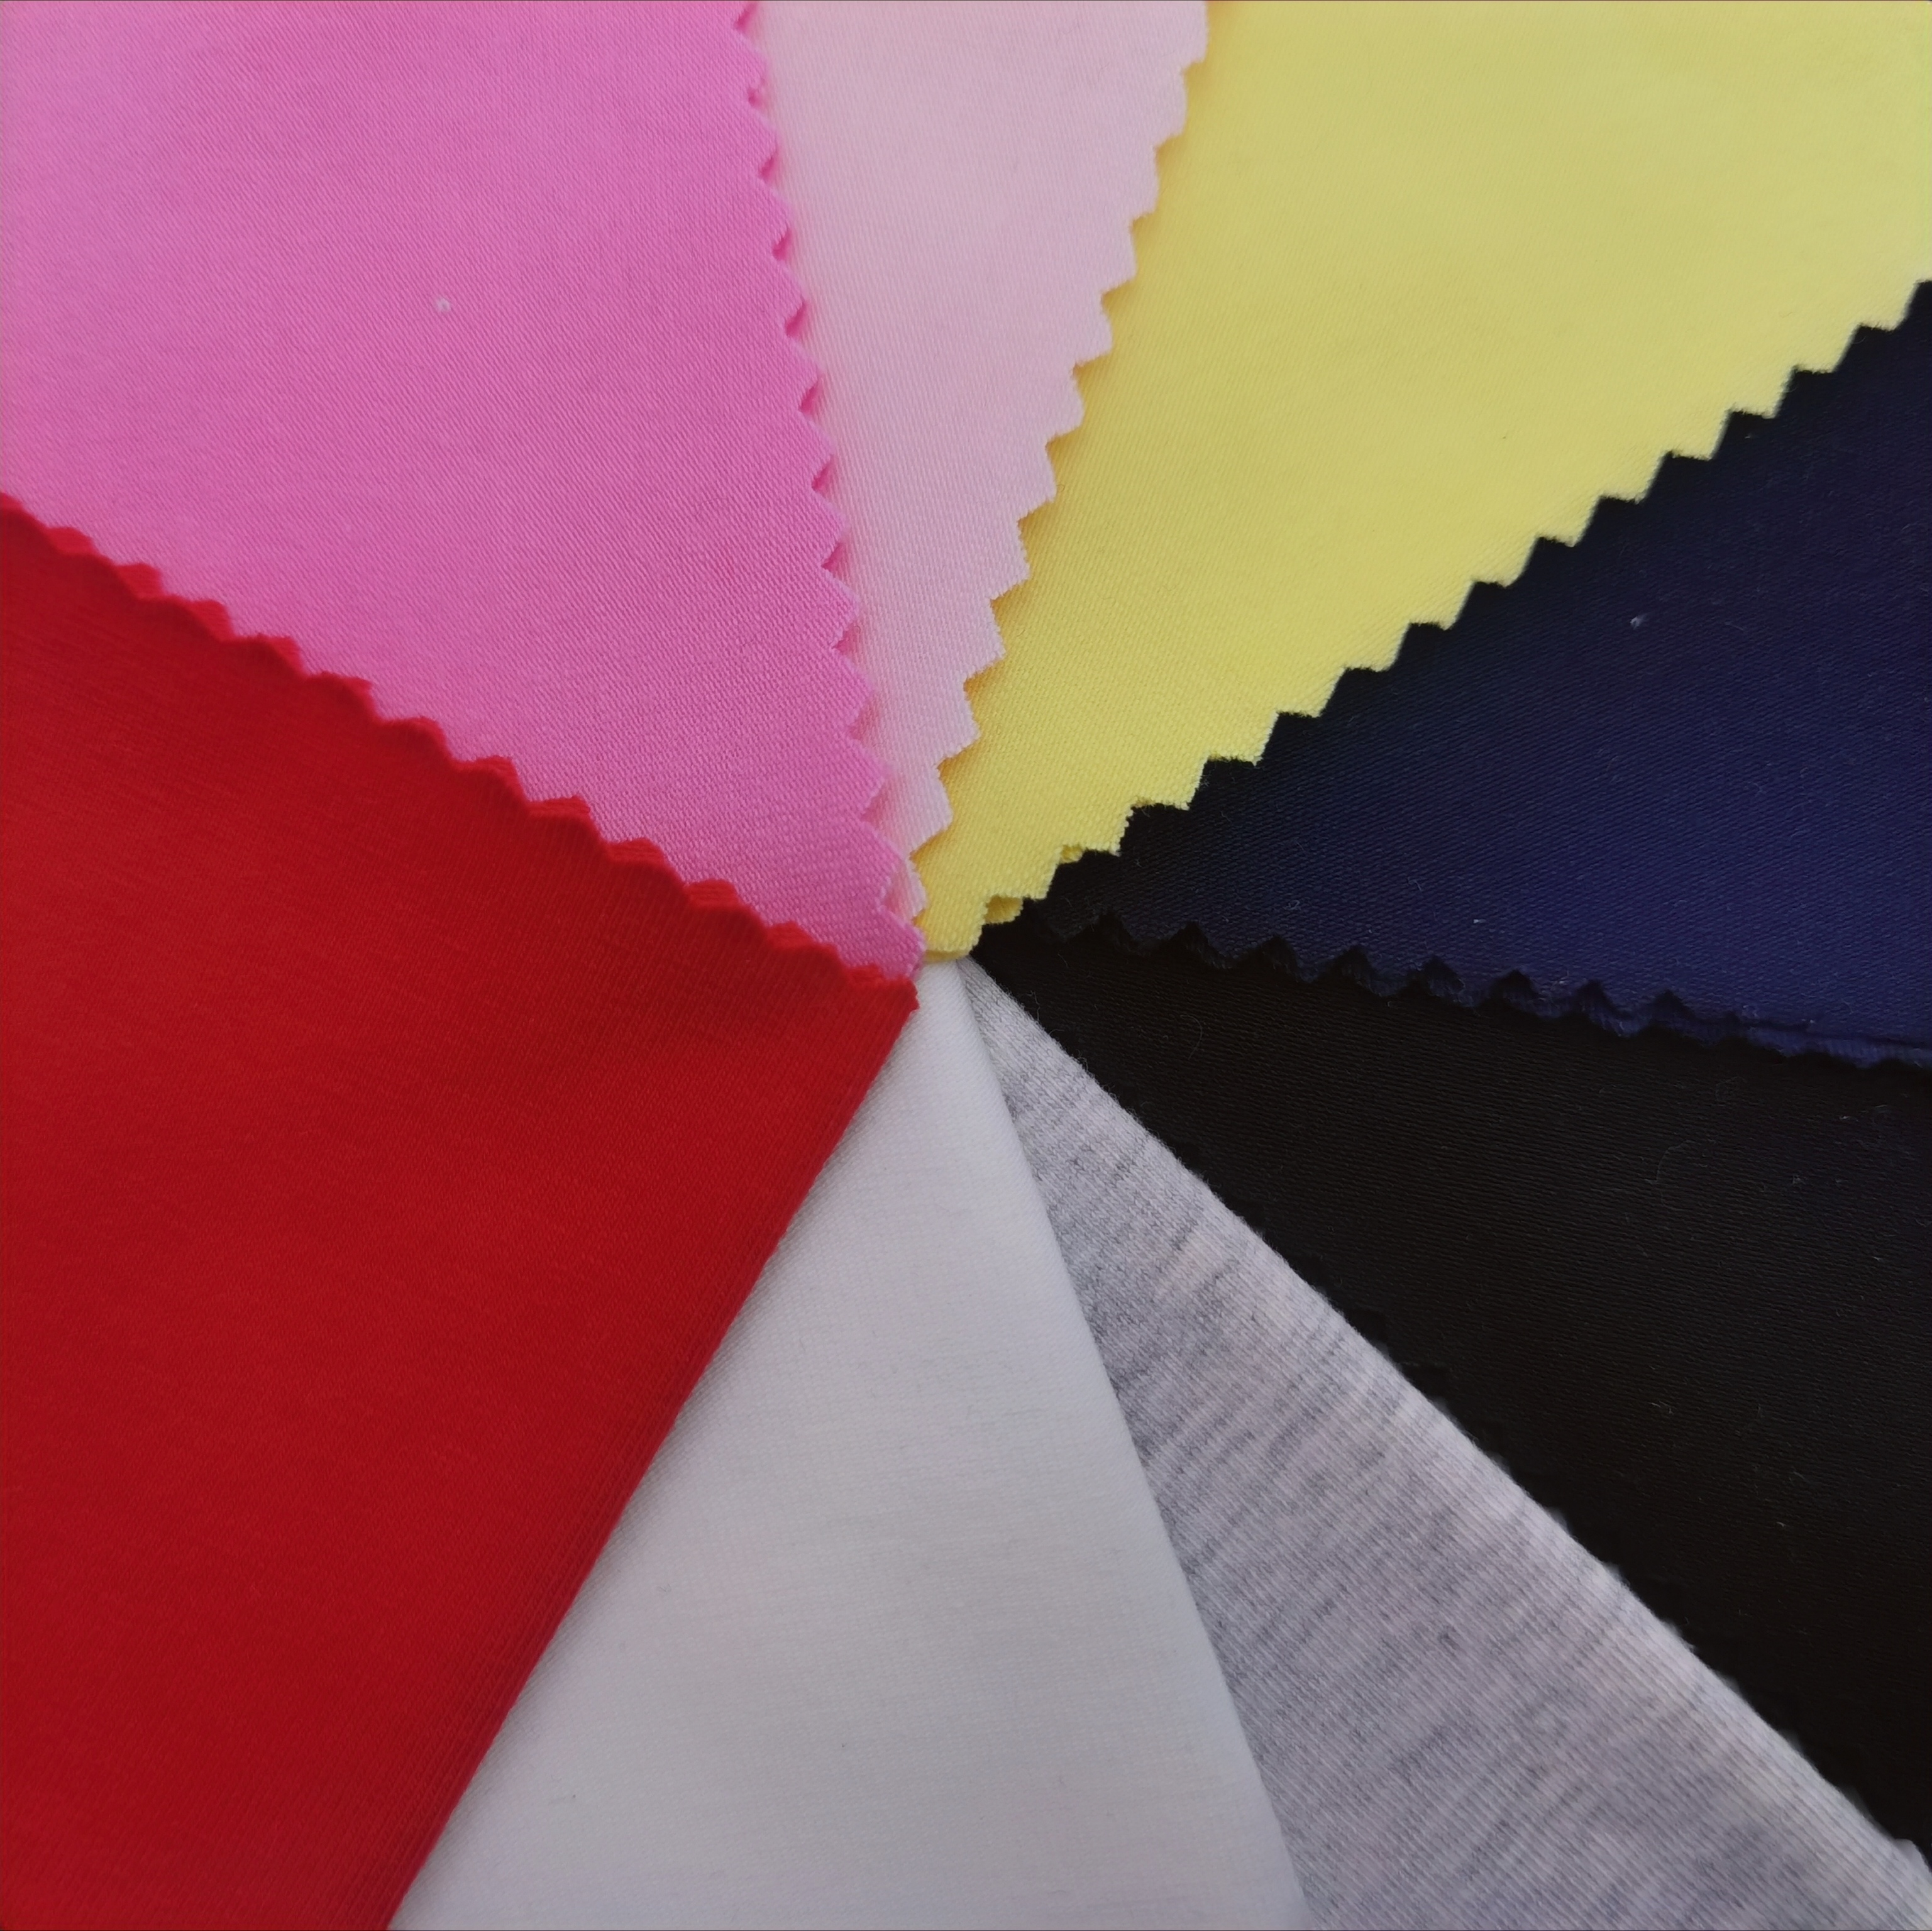 good factory 95 organic cotton 5spandex knitted combed jersey fabric for t-shirts baby garments towel